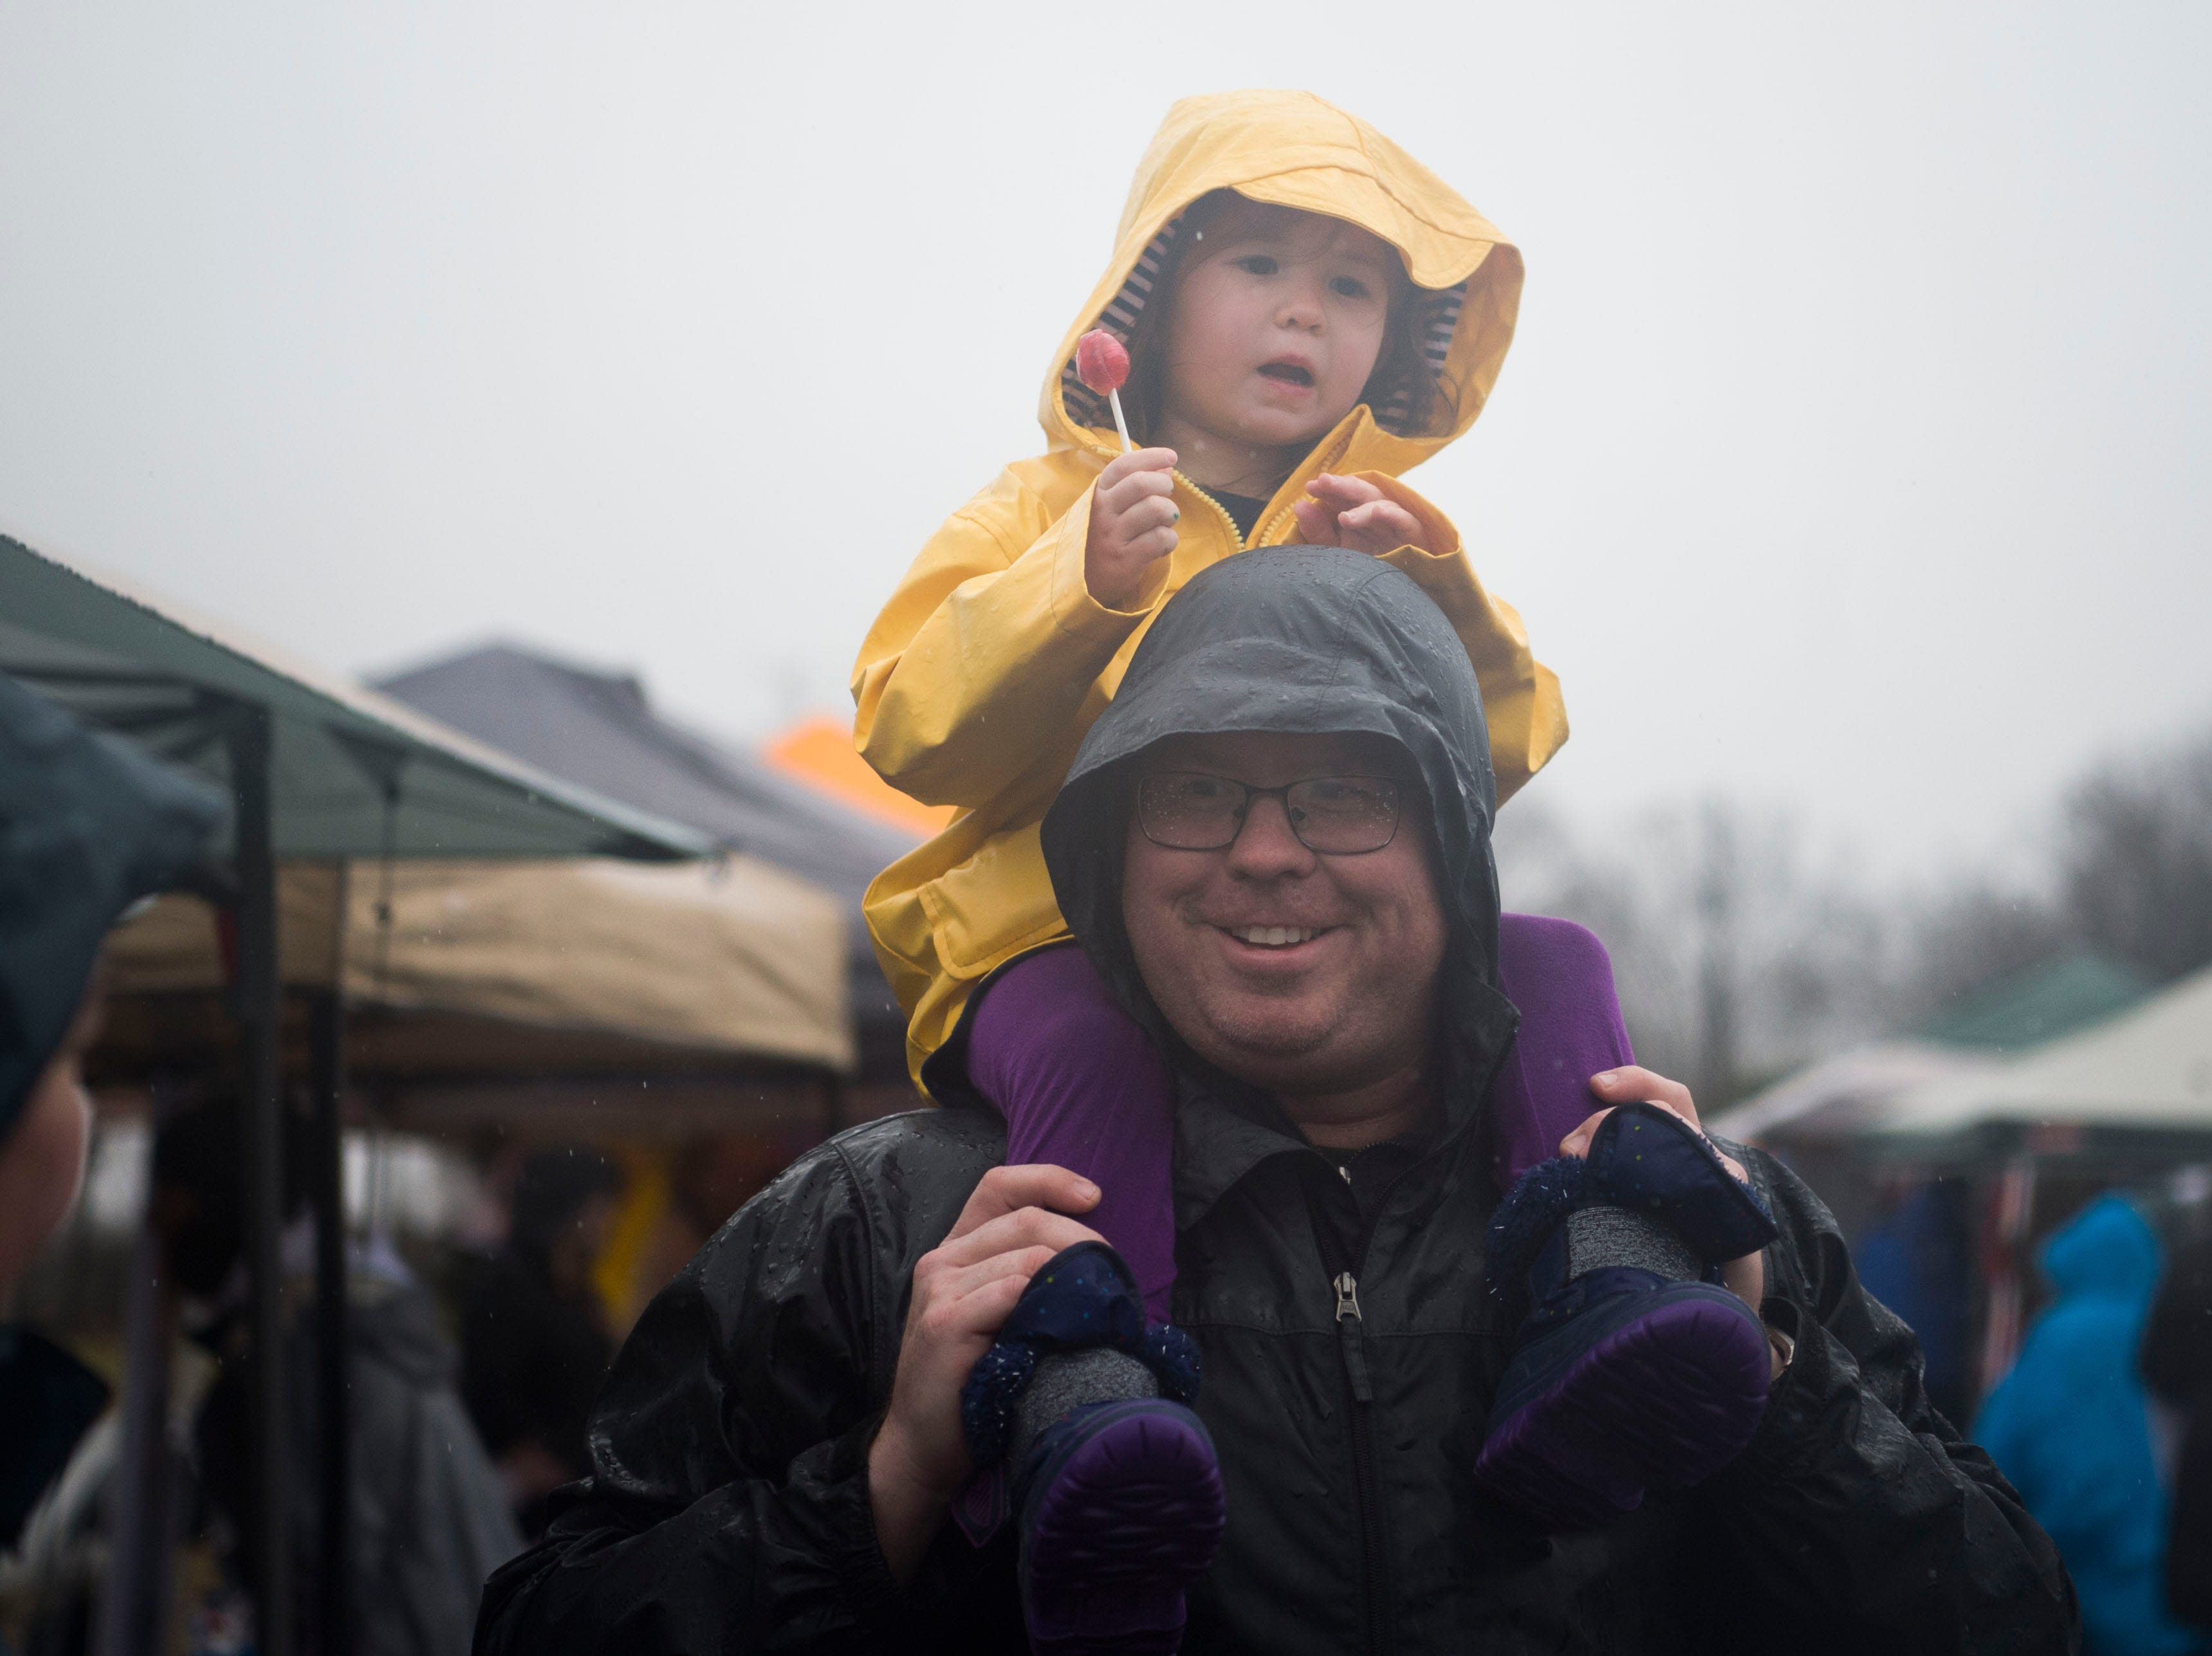 Eric Connor holds his daughter Meredith, 3, on his shoulders during the 2019 Women's March in Chilhowee Park Saturday, Jan. 19, 2019.